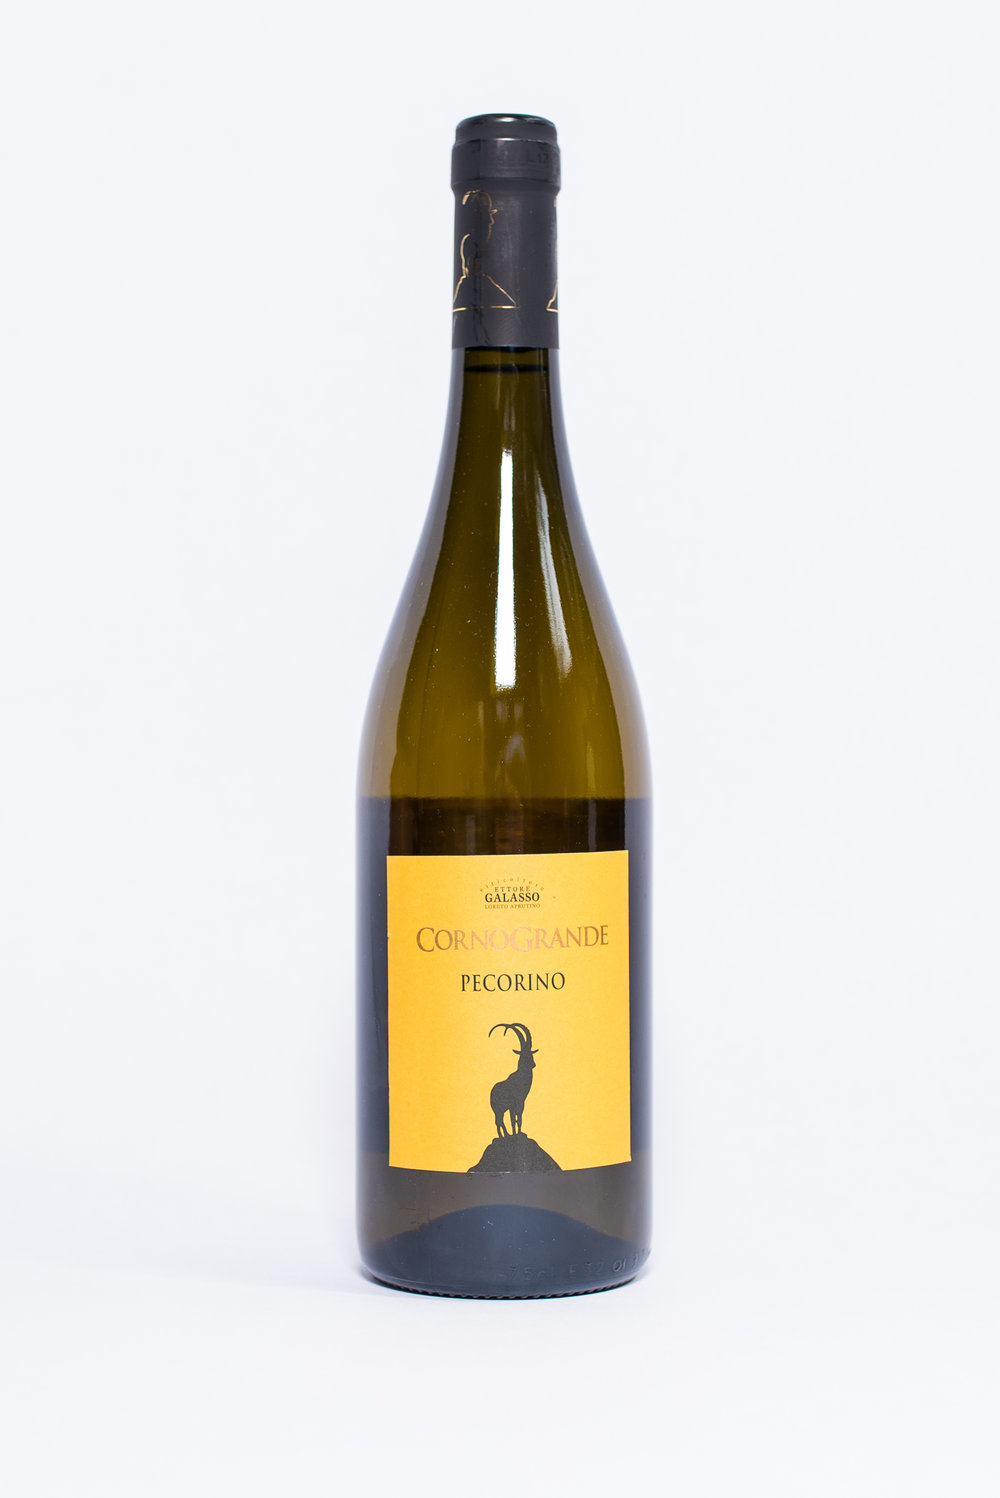 Corno Grande Pecorino IGT 2016    Producer:   Cantine Galasso    Region:  Abruzzo  Grapes:  Pecorino  Nose:  Characteristic aromas with scents of citrus fruit  Taste:  Fresh, good persistence with savory aftertaste